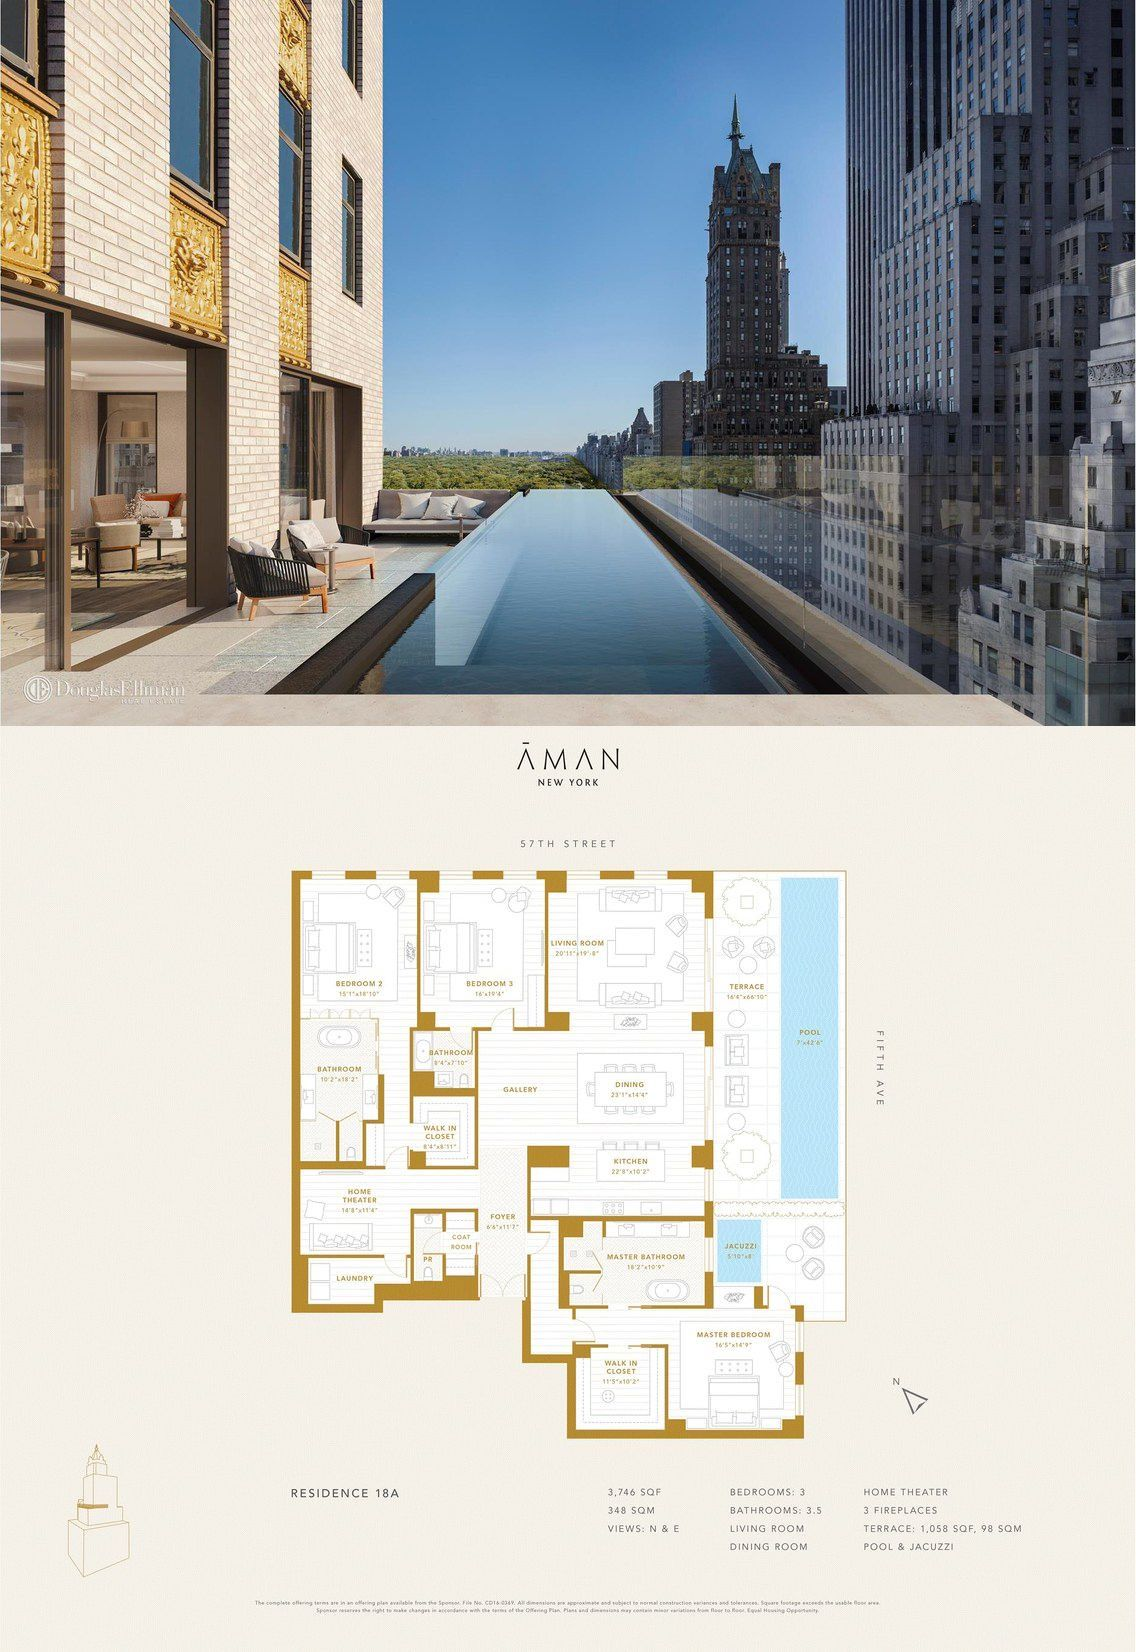 Aman New York Residences 18a This 3 746 Square Foot Three Bedroom Three And A Half Bath Residence Metic In 2020 Apartment Floor Plans Floor Plans Central Park View